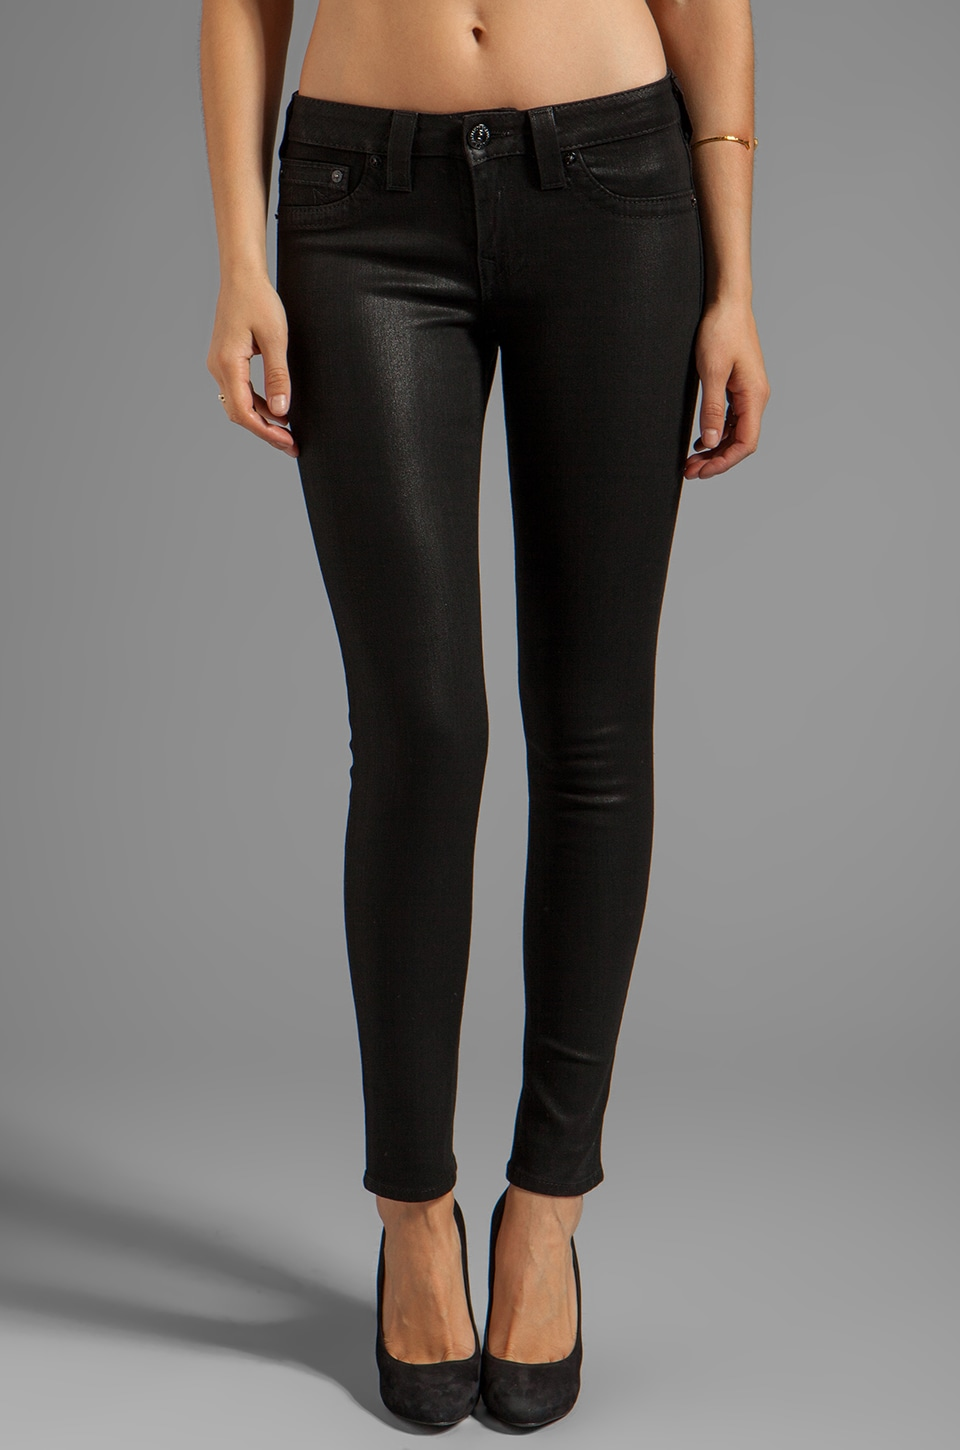 True Religion Halle High Rise Super Skinny in Real Renegade